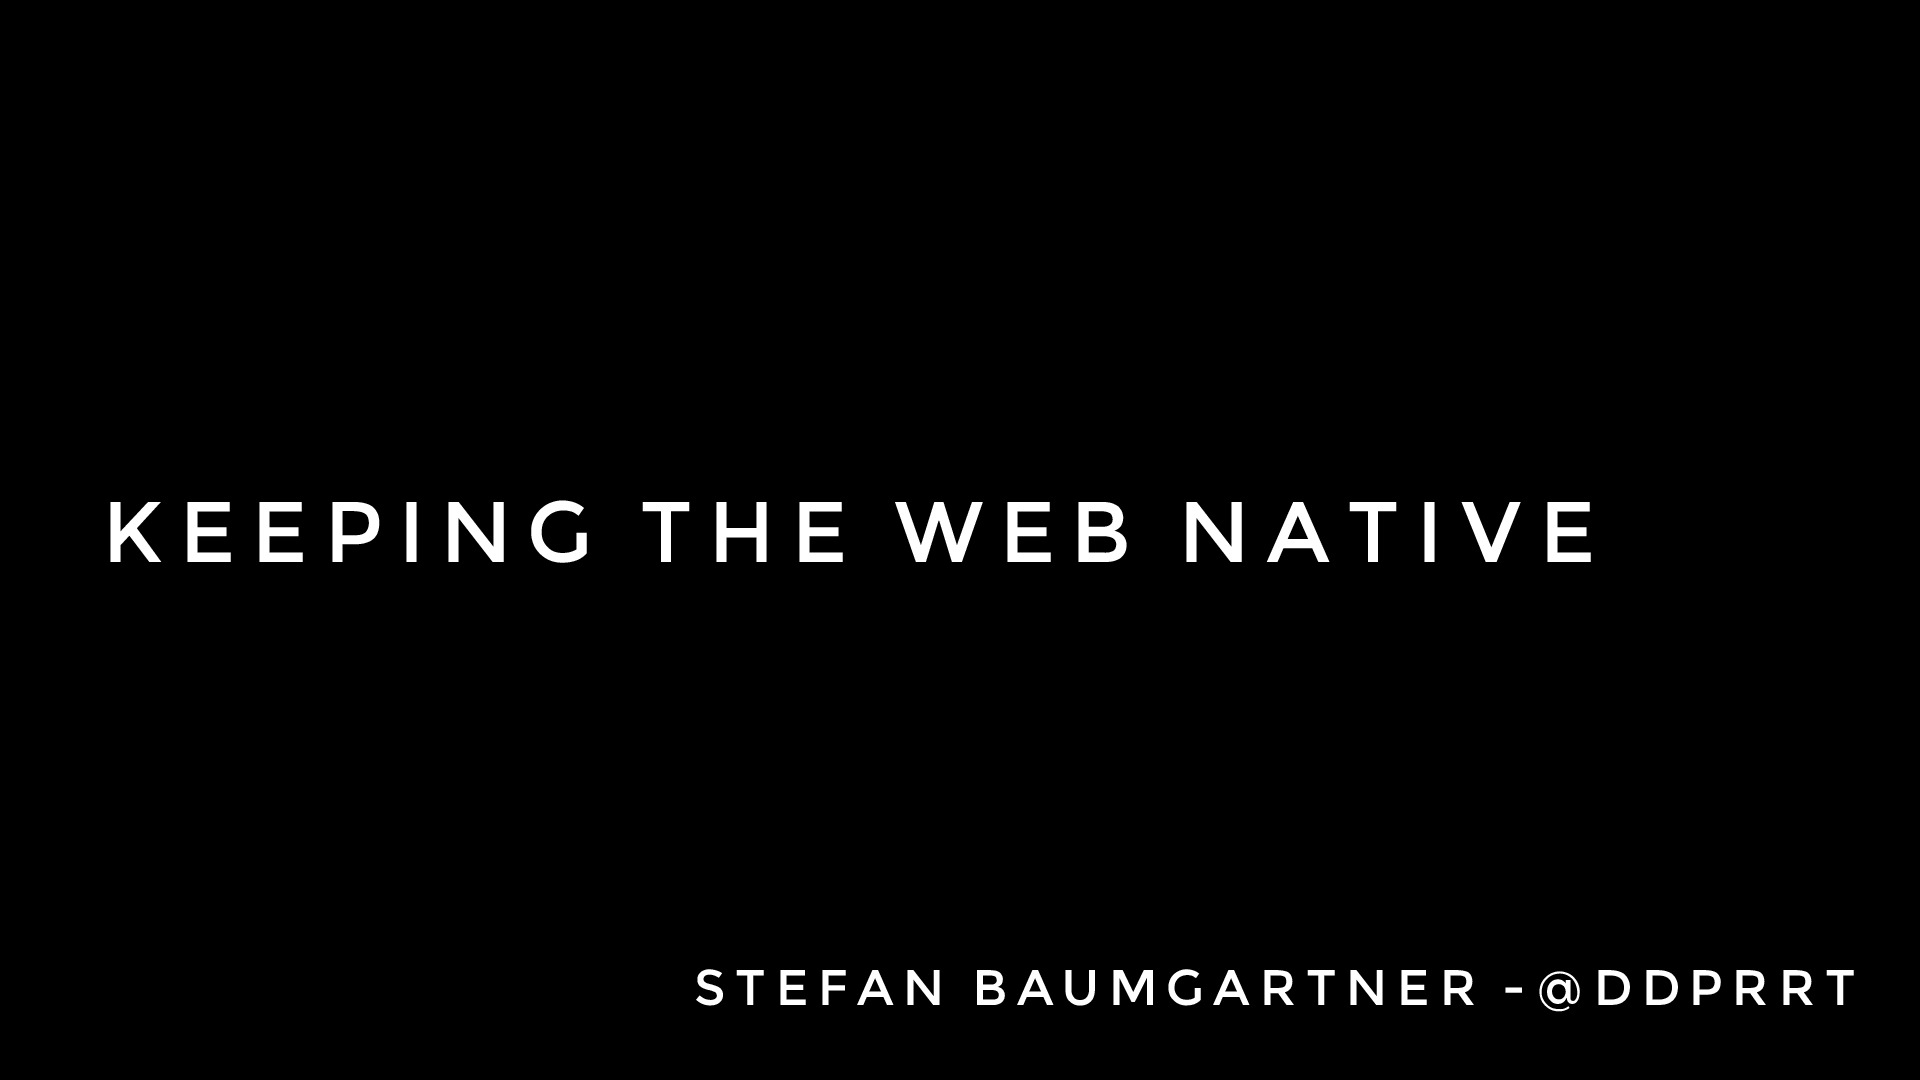 Keeping the web native!